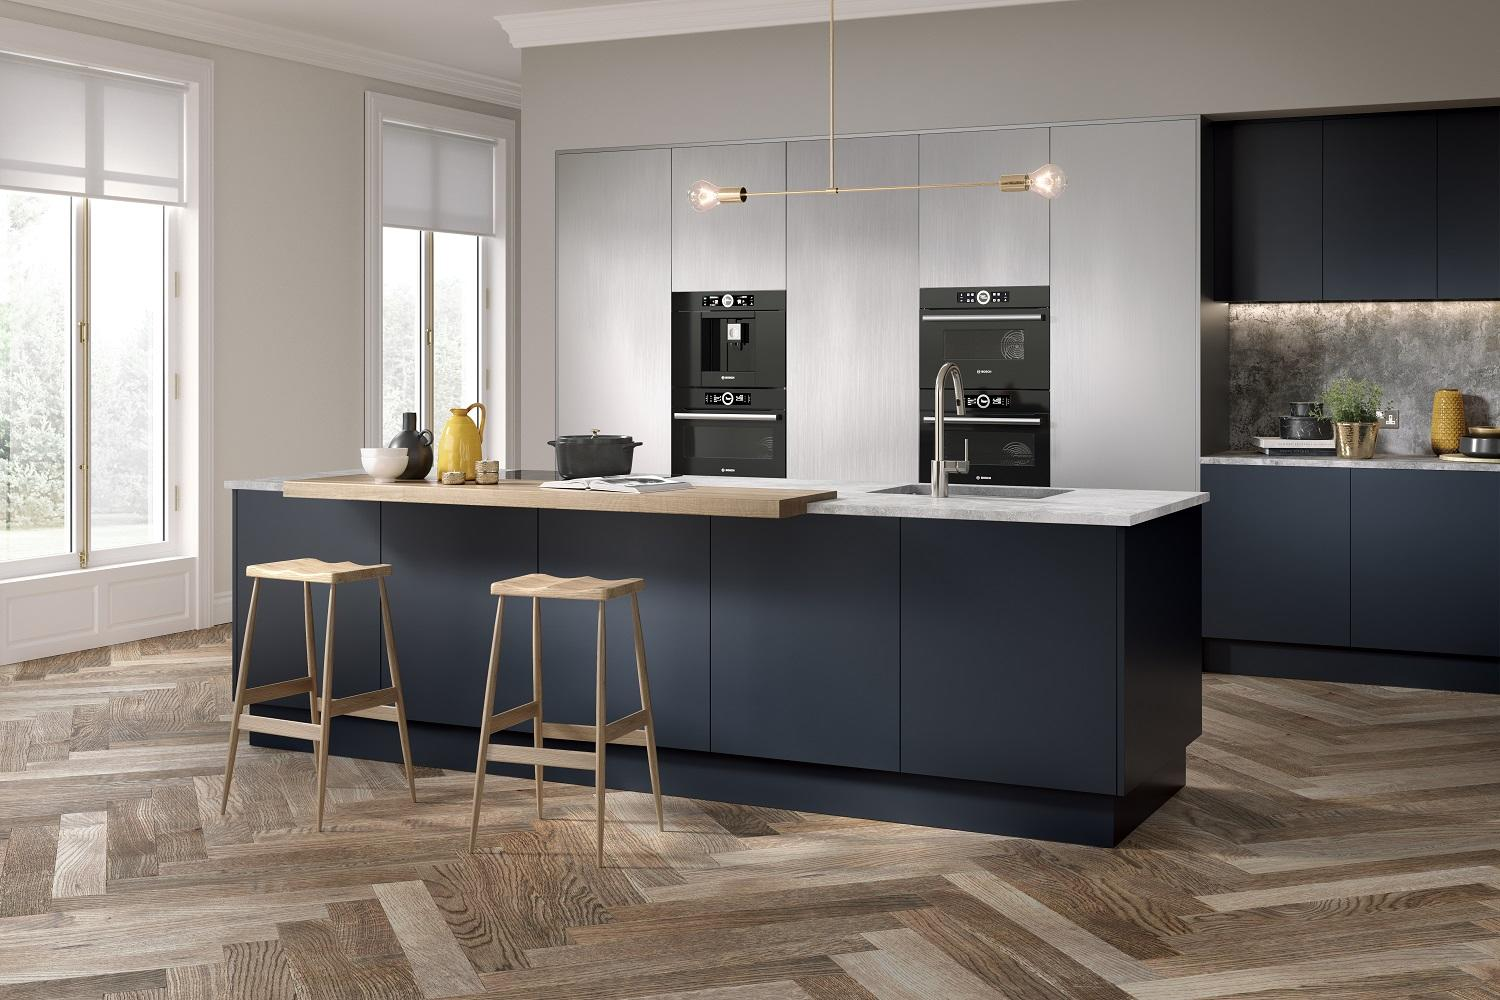 Serica matt indigo blue kitchen